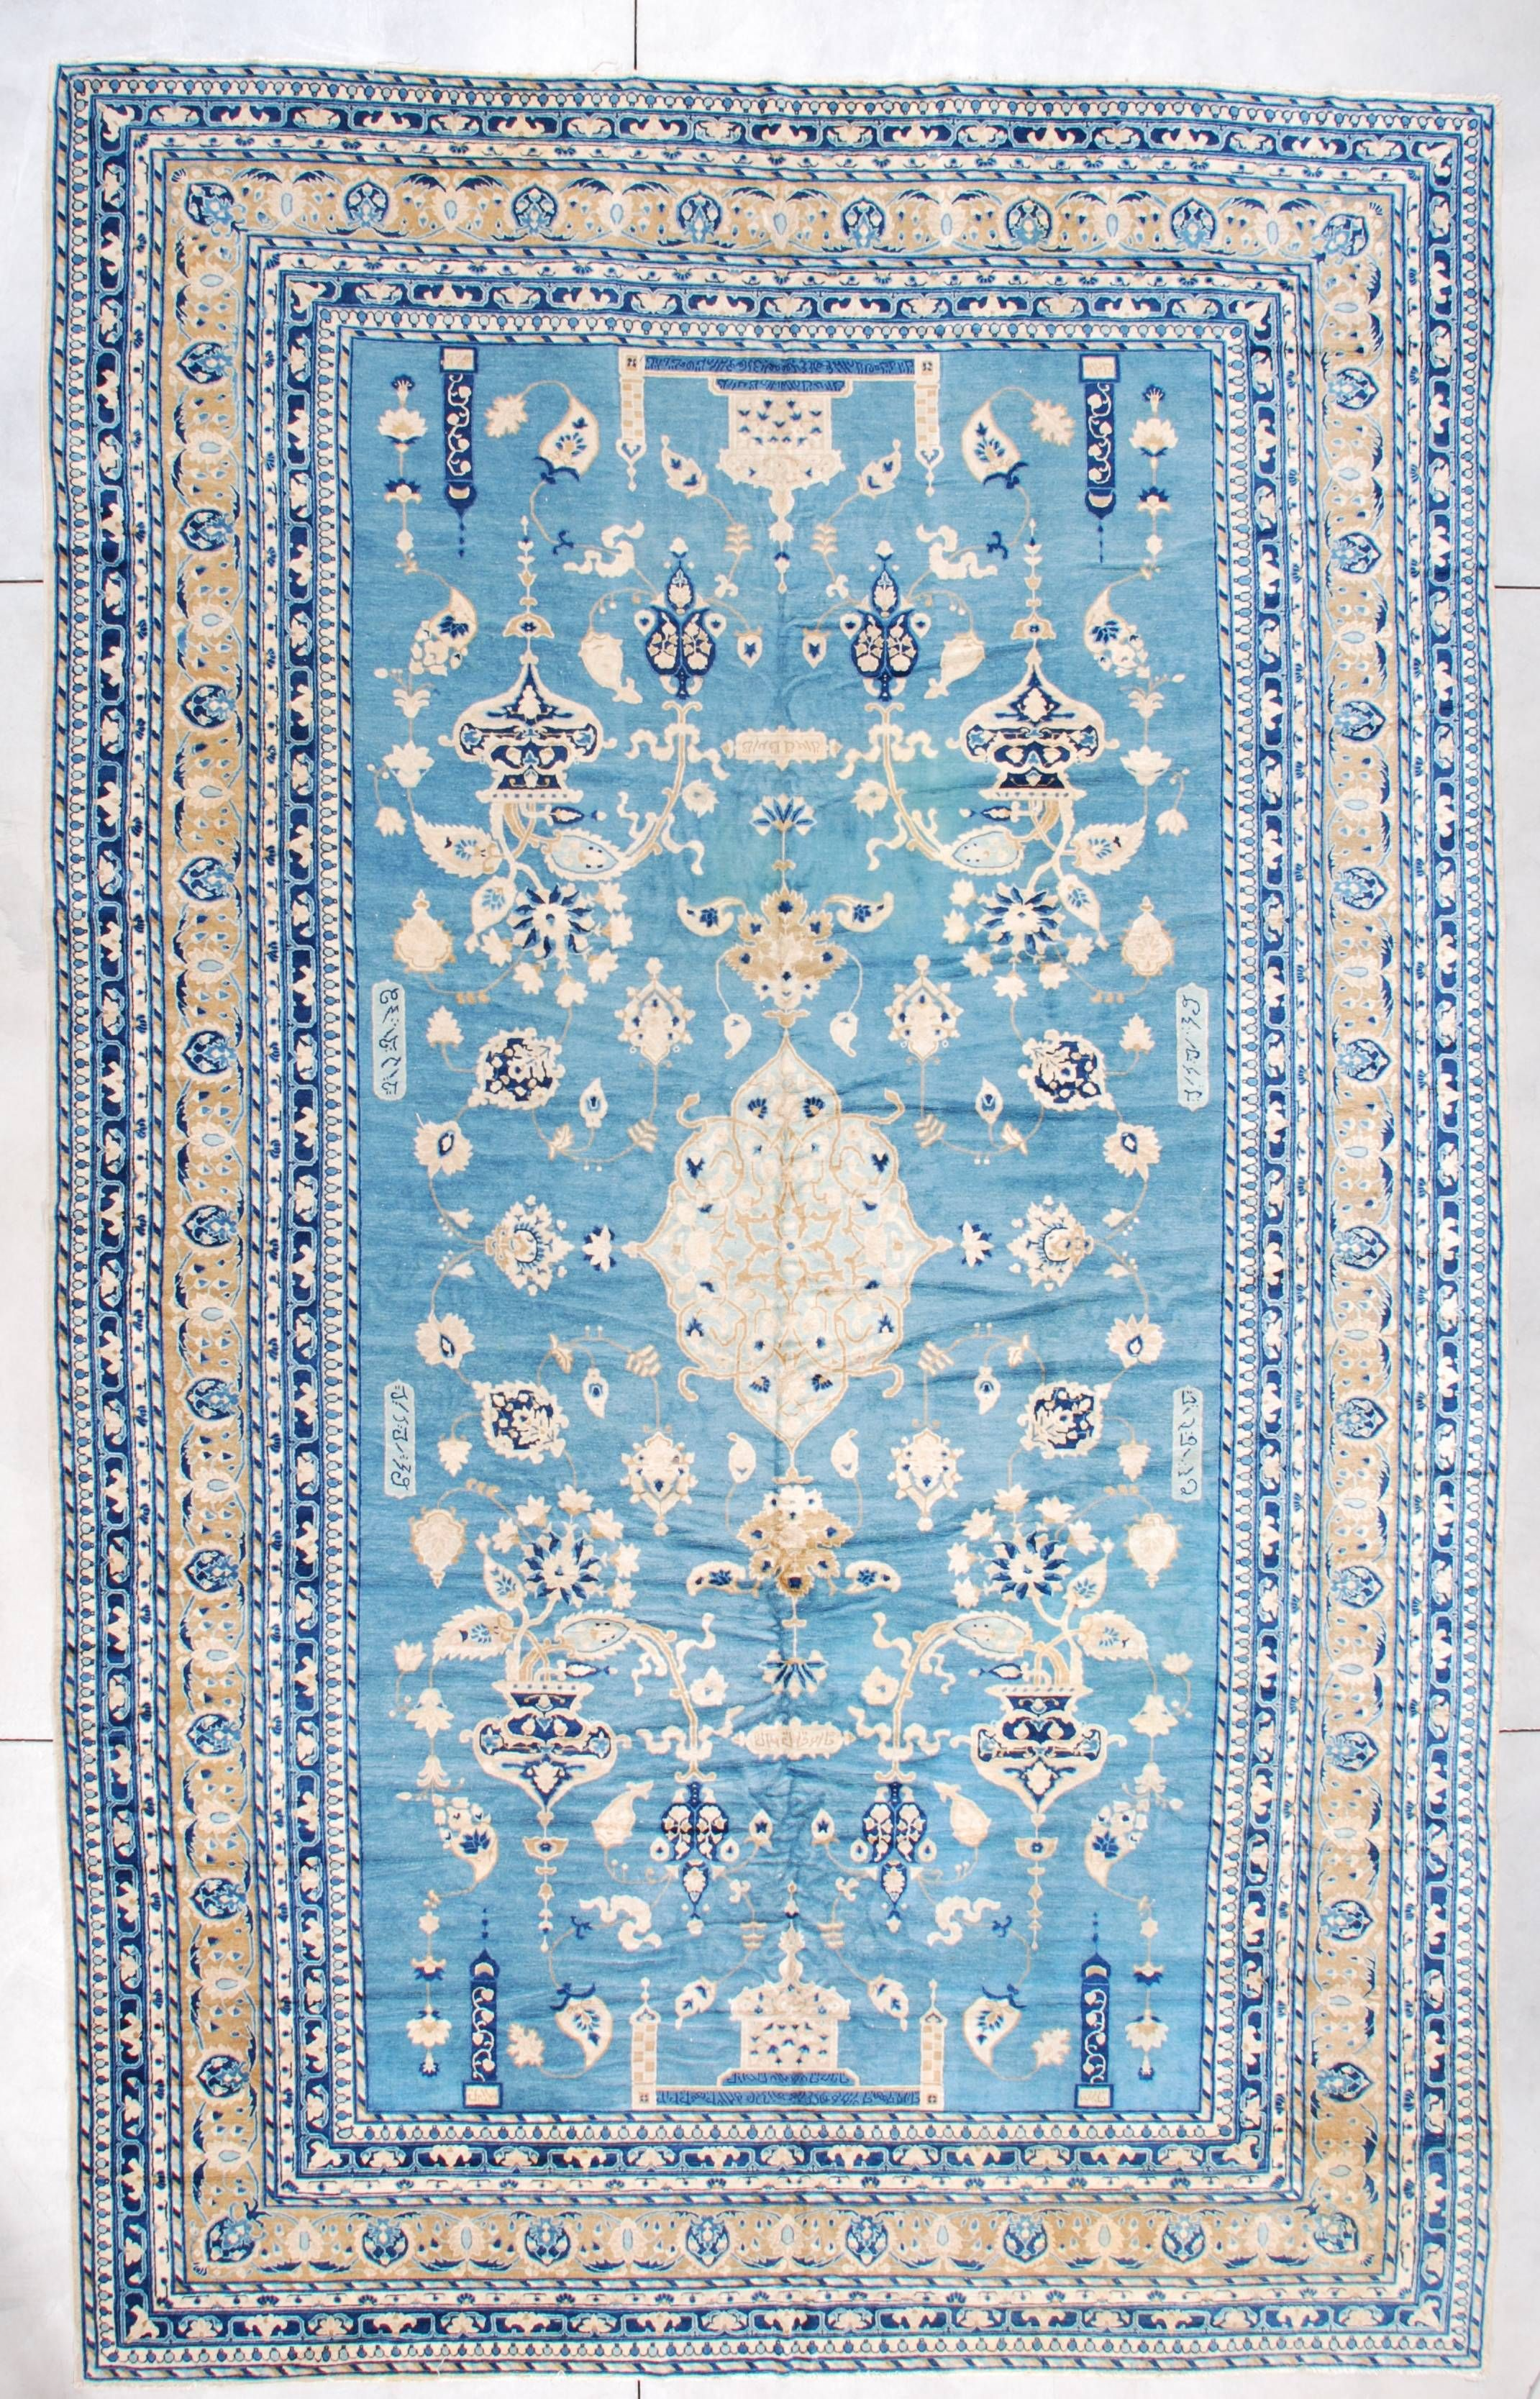 Polonaise antique oriental rugs - Blue Antique Persian Rug This Rug Is In Mint Condition